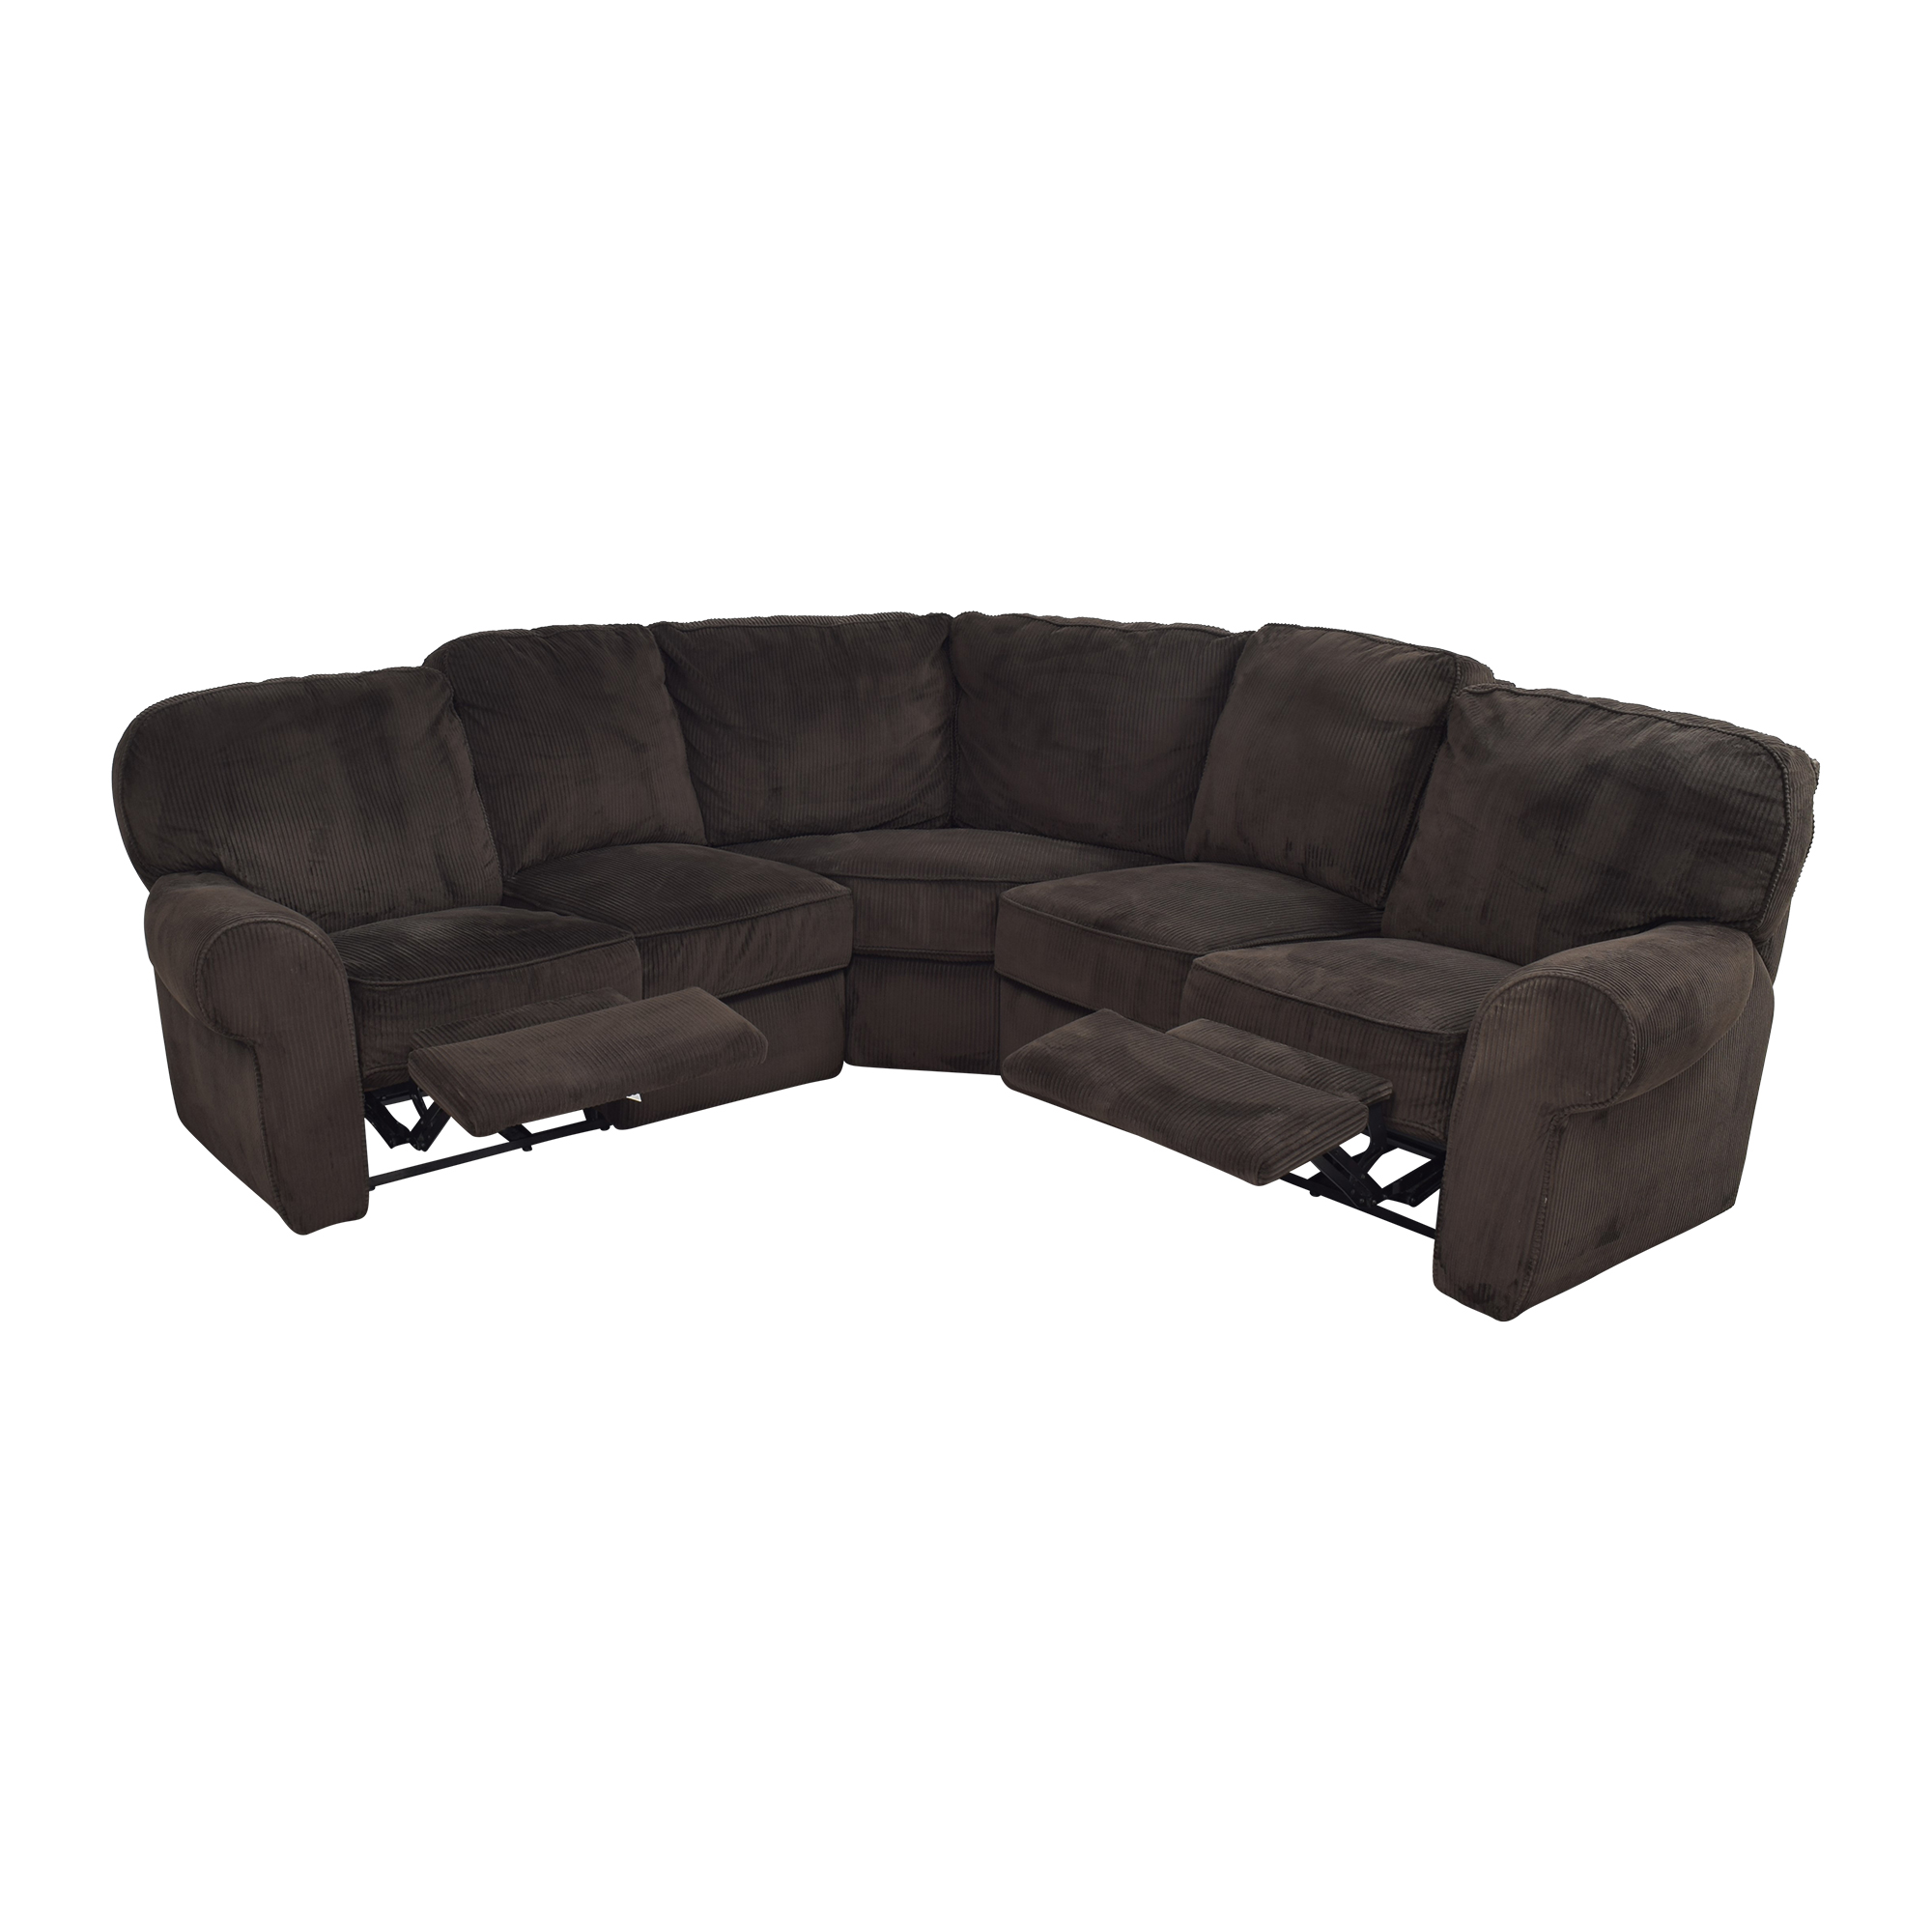 Lane Furniture Lane Furniture Megan Three Piece Reclining Sectional coupon